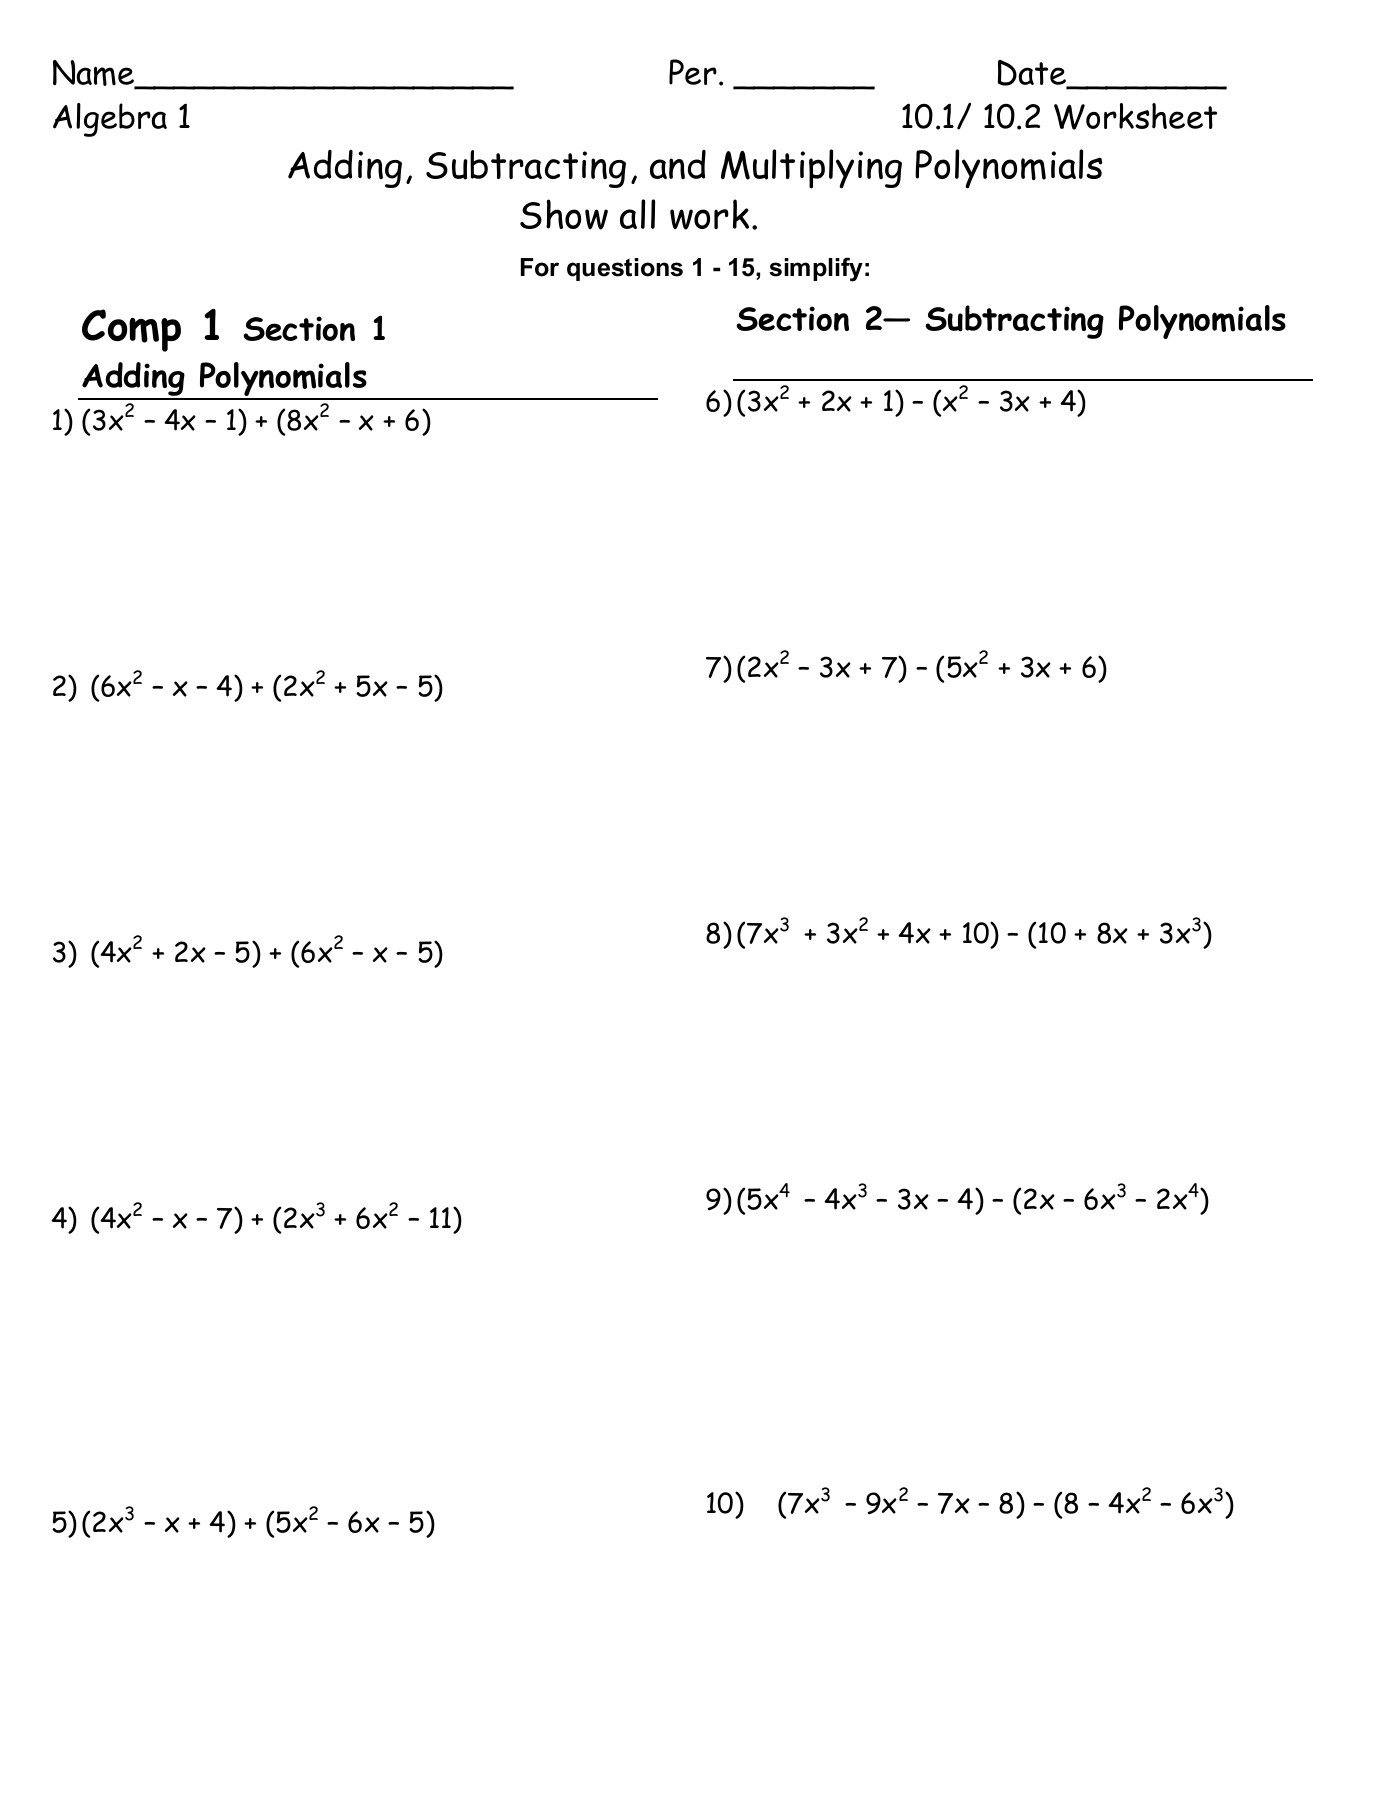 Adding And Subtracting Polynomials Practice Worksheet